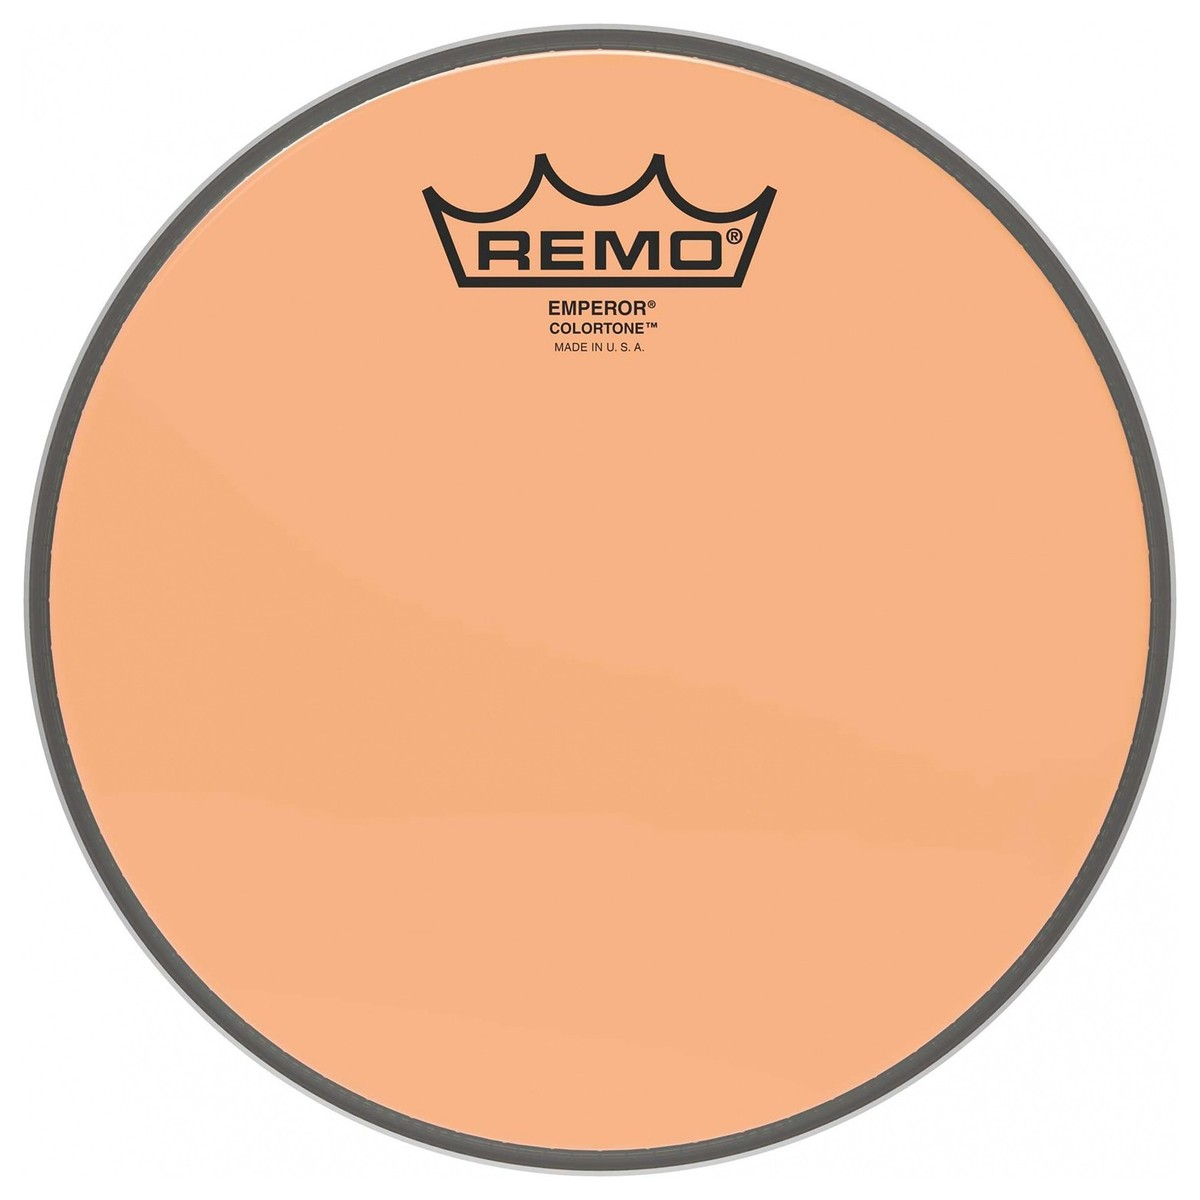 Remo Emperor Colortone Orange 16 Drum Head